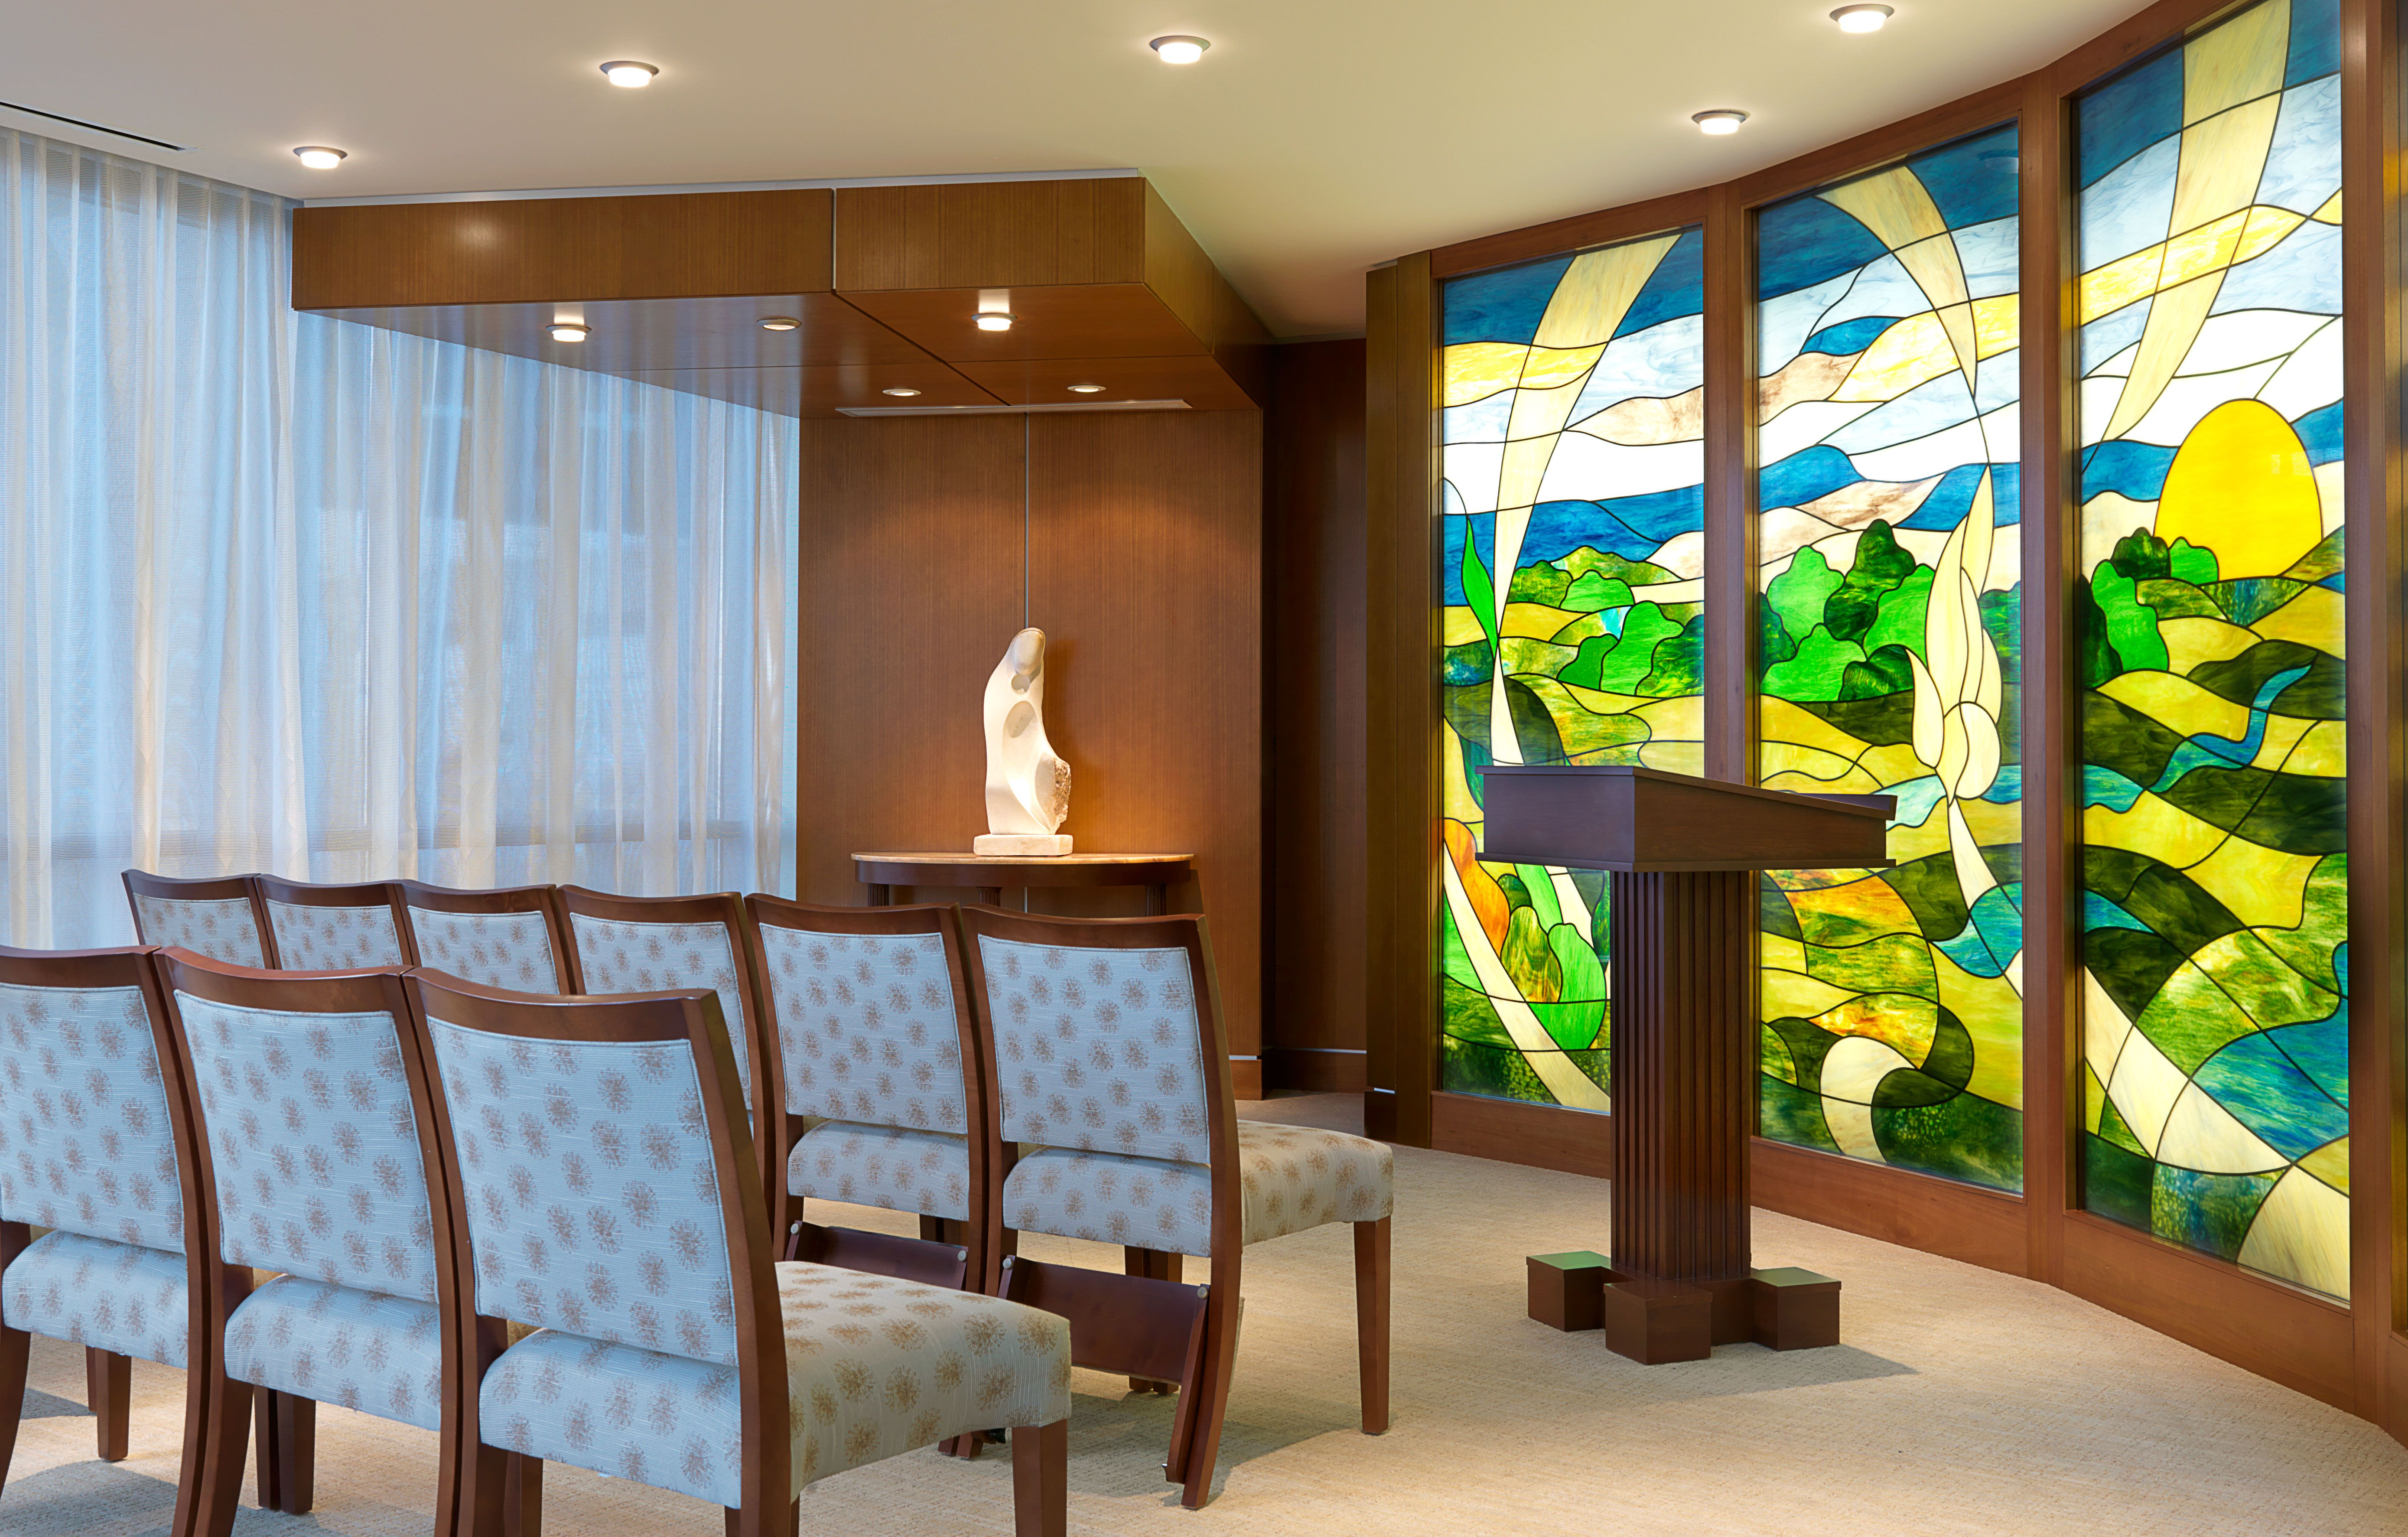 Silver cross hospital chapel healthcare design - How long is interior design school ...